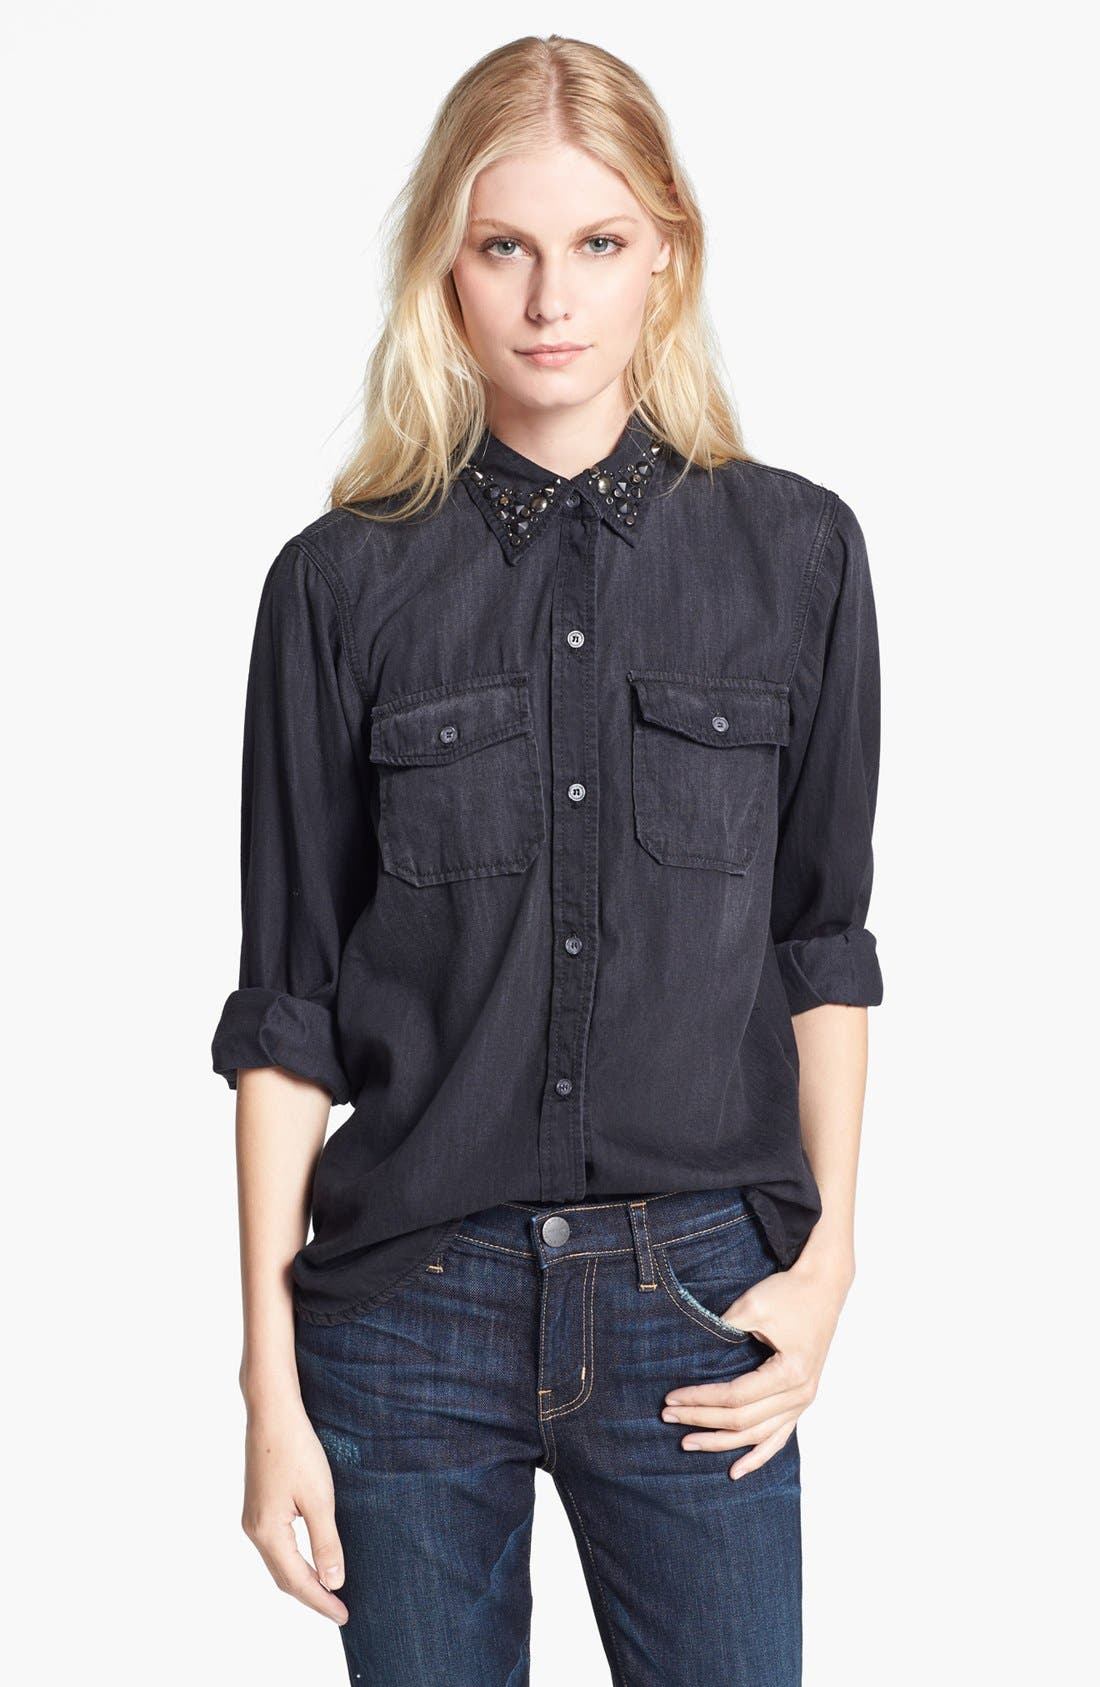 Alternate Image 1 Selected - Current/Elliott 'The Perfect Shirt' Button Front Denim Shirt